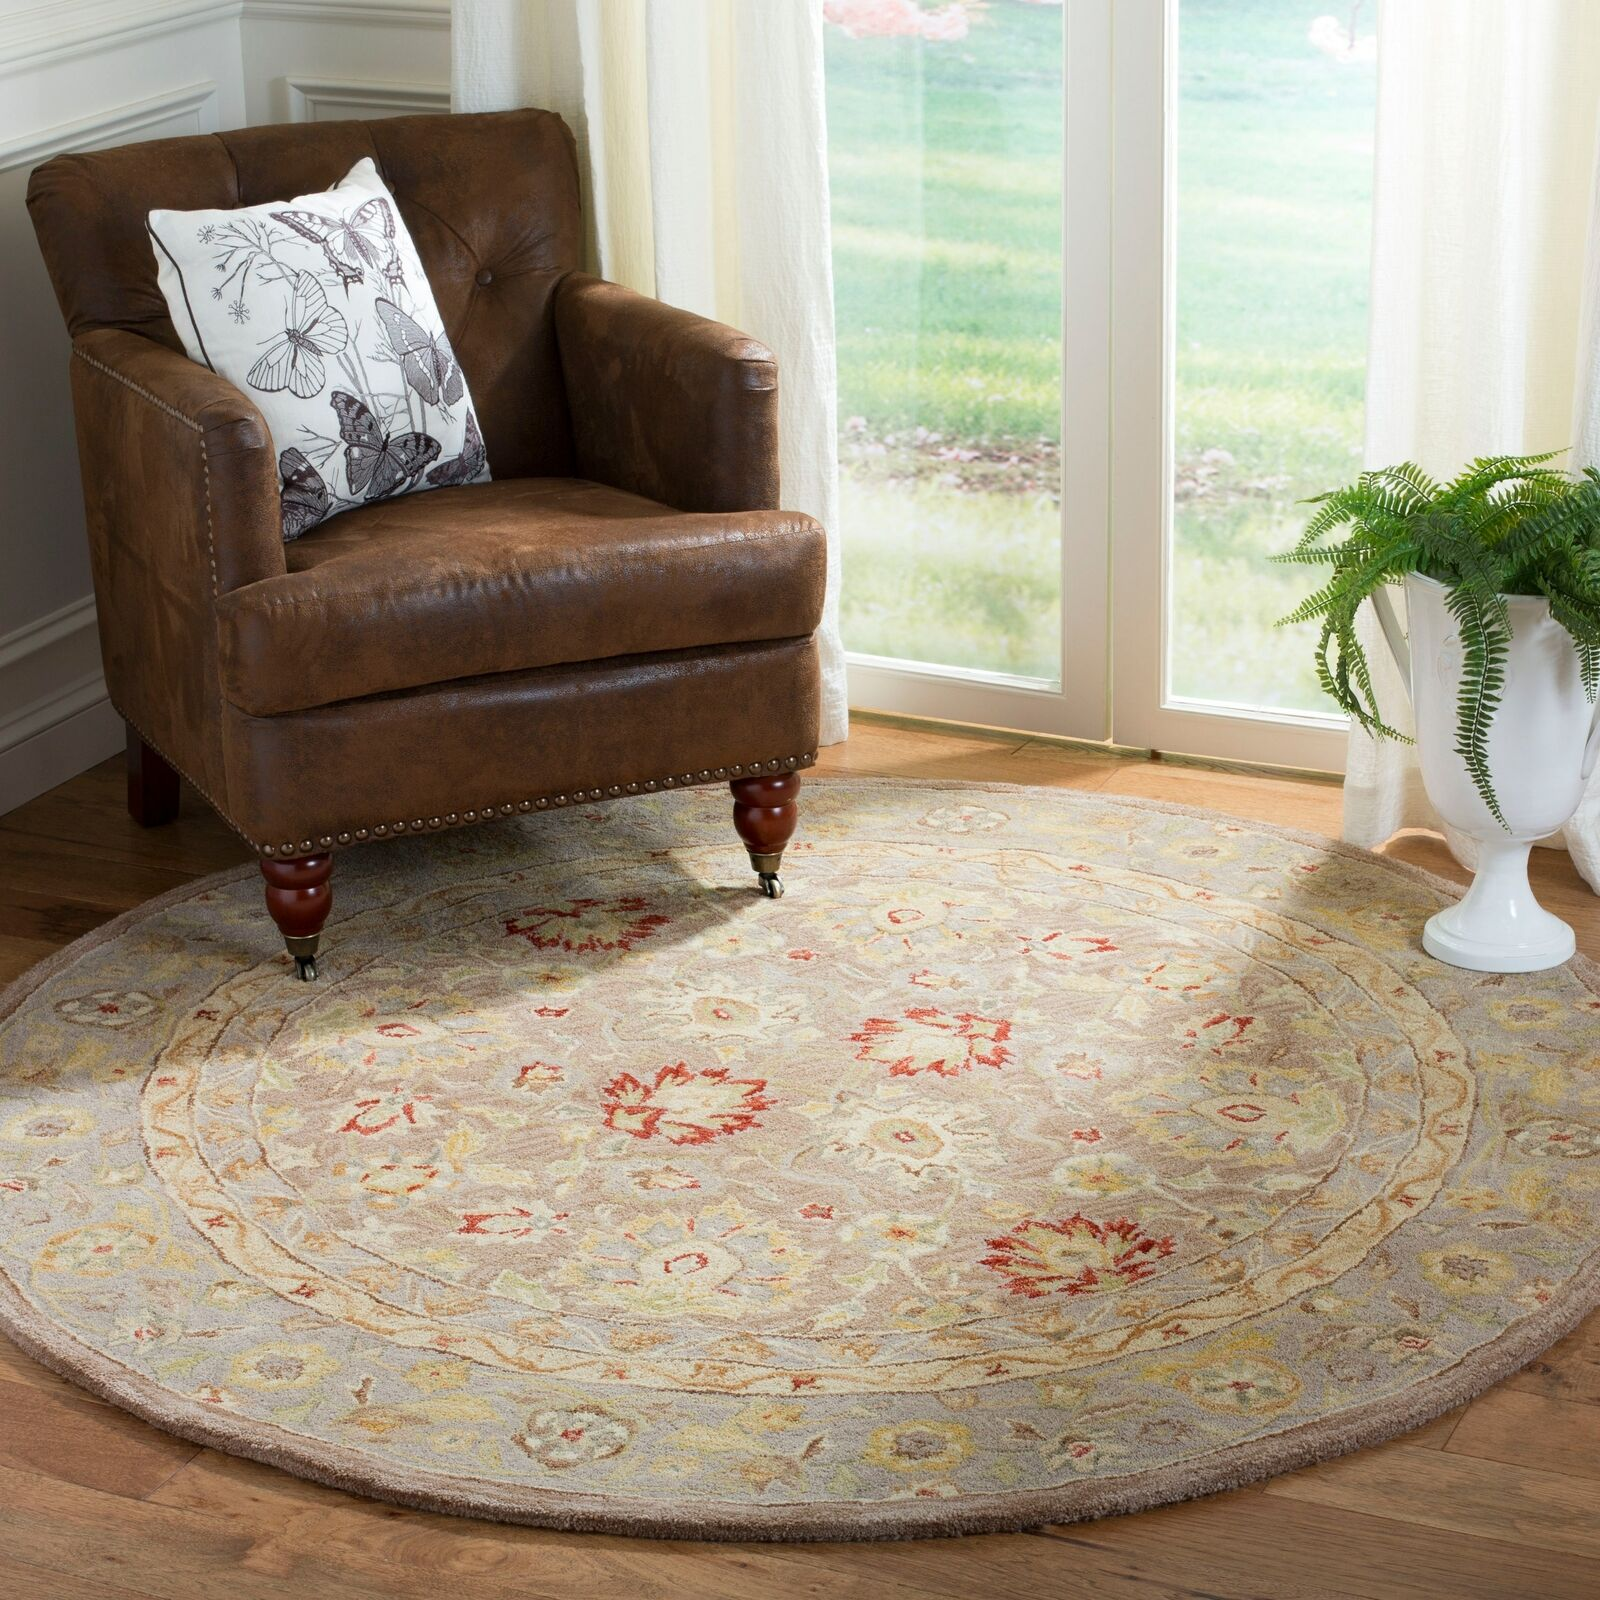 Safavieh Anatolia Collection An522b Handmade Traditional Oriental Tan And Ivory Wool Round Area Rug 6 Diameter For Sale Online Ebay